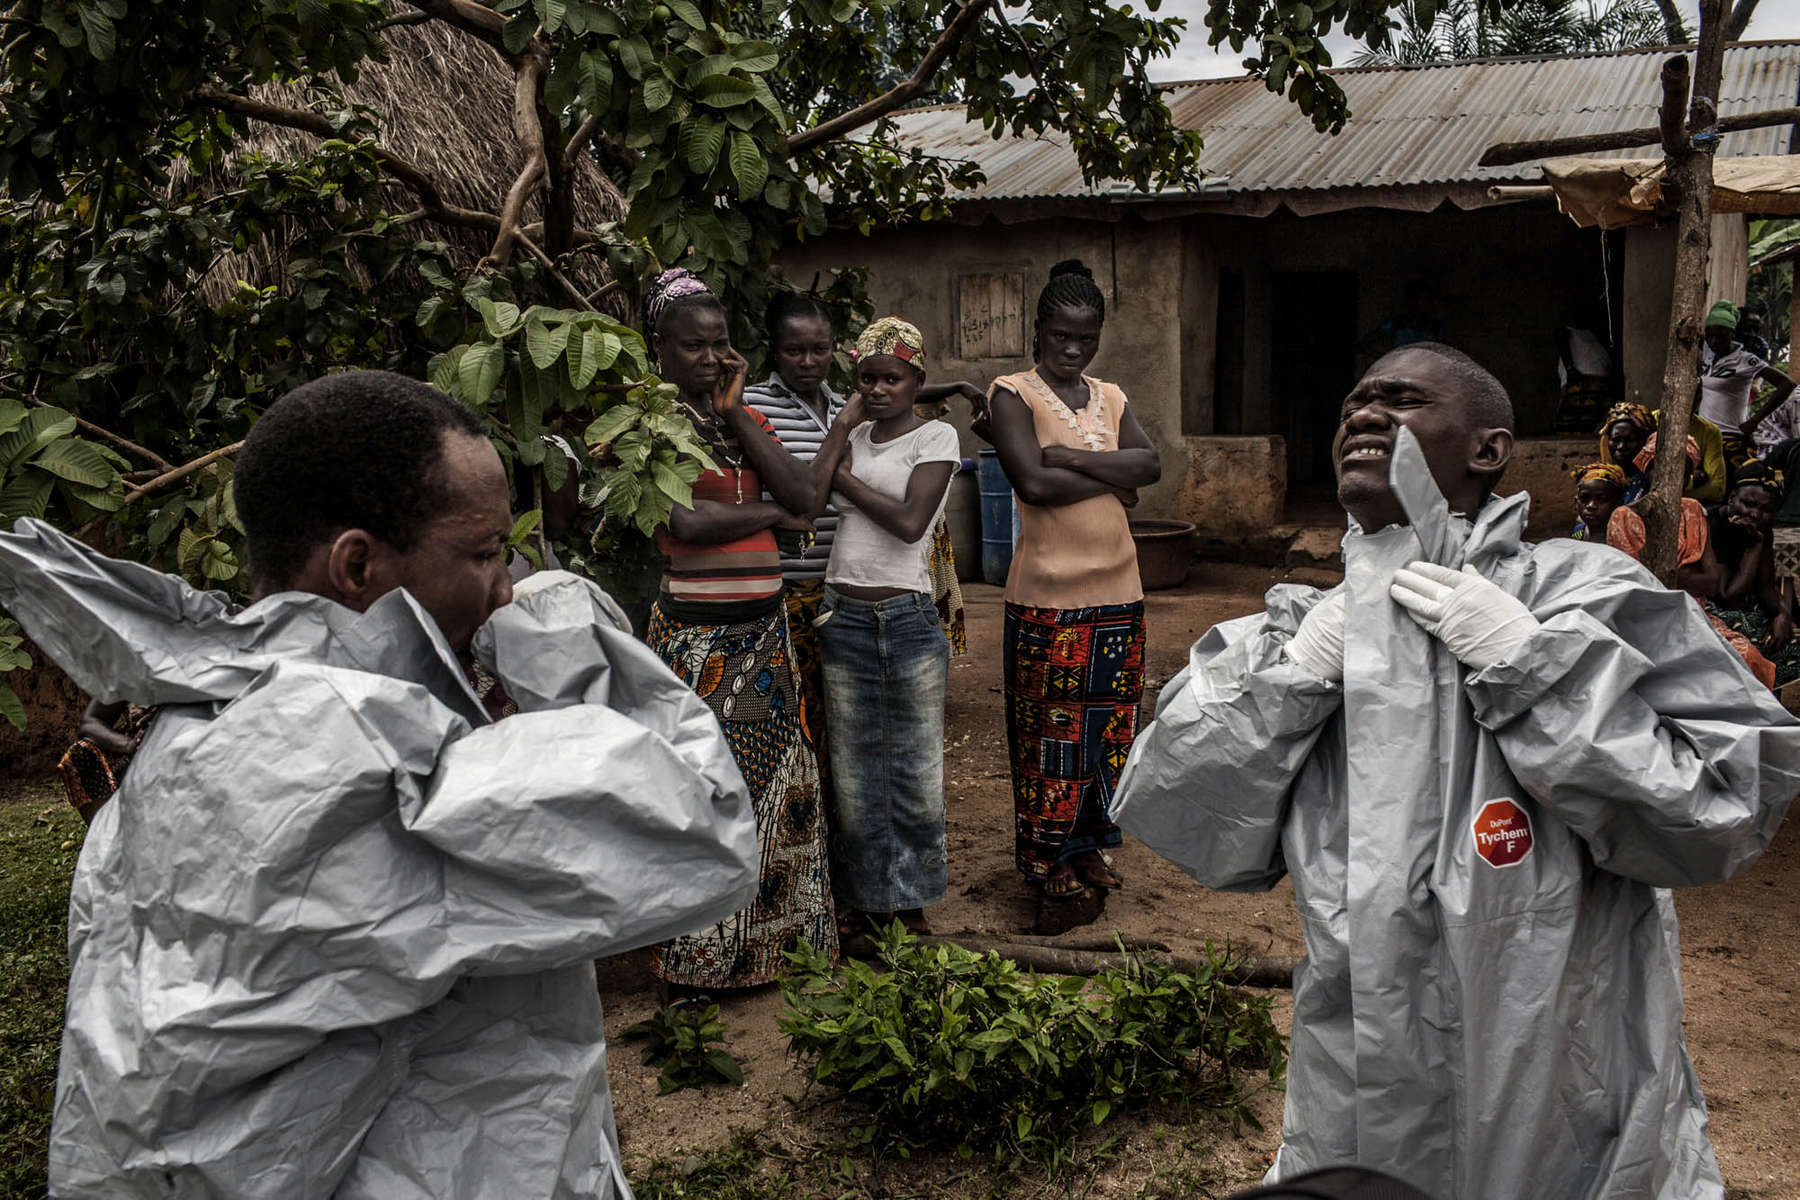 Members of a Red Cross burial team put on personal protective equipment before entering the home of a woman suspected of dying of Ebola in the village of Dia on Monday, August 18, 2014. So-called {quote}safe burials,{quote} conducted by the International Federation of the Red Cross, are conducted in accordance with rigorous safety procedures. The dead bodies of Ebola victims are extremely infectious. (Pete Muller/Prime for the Washington Post)